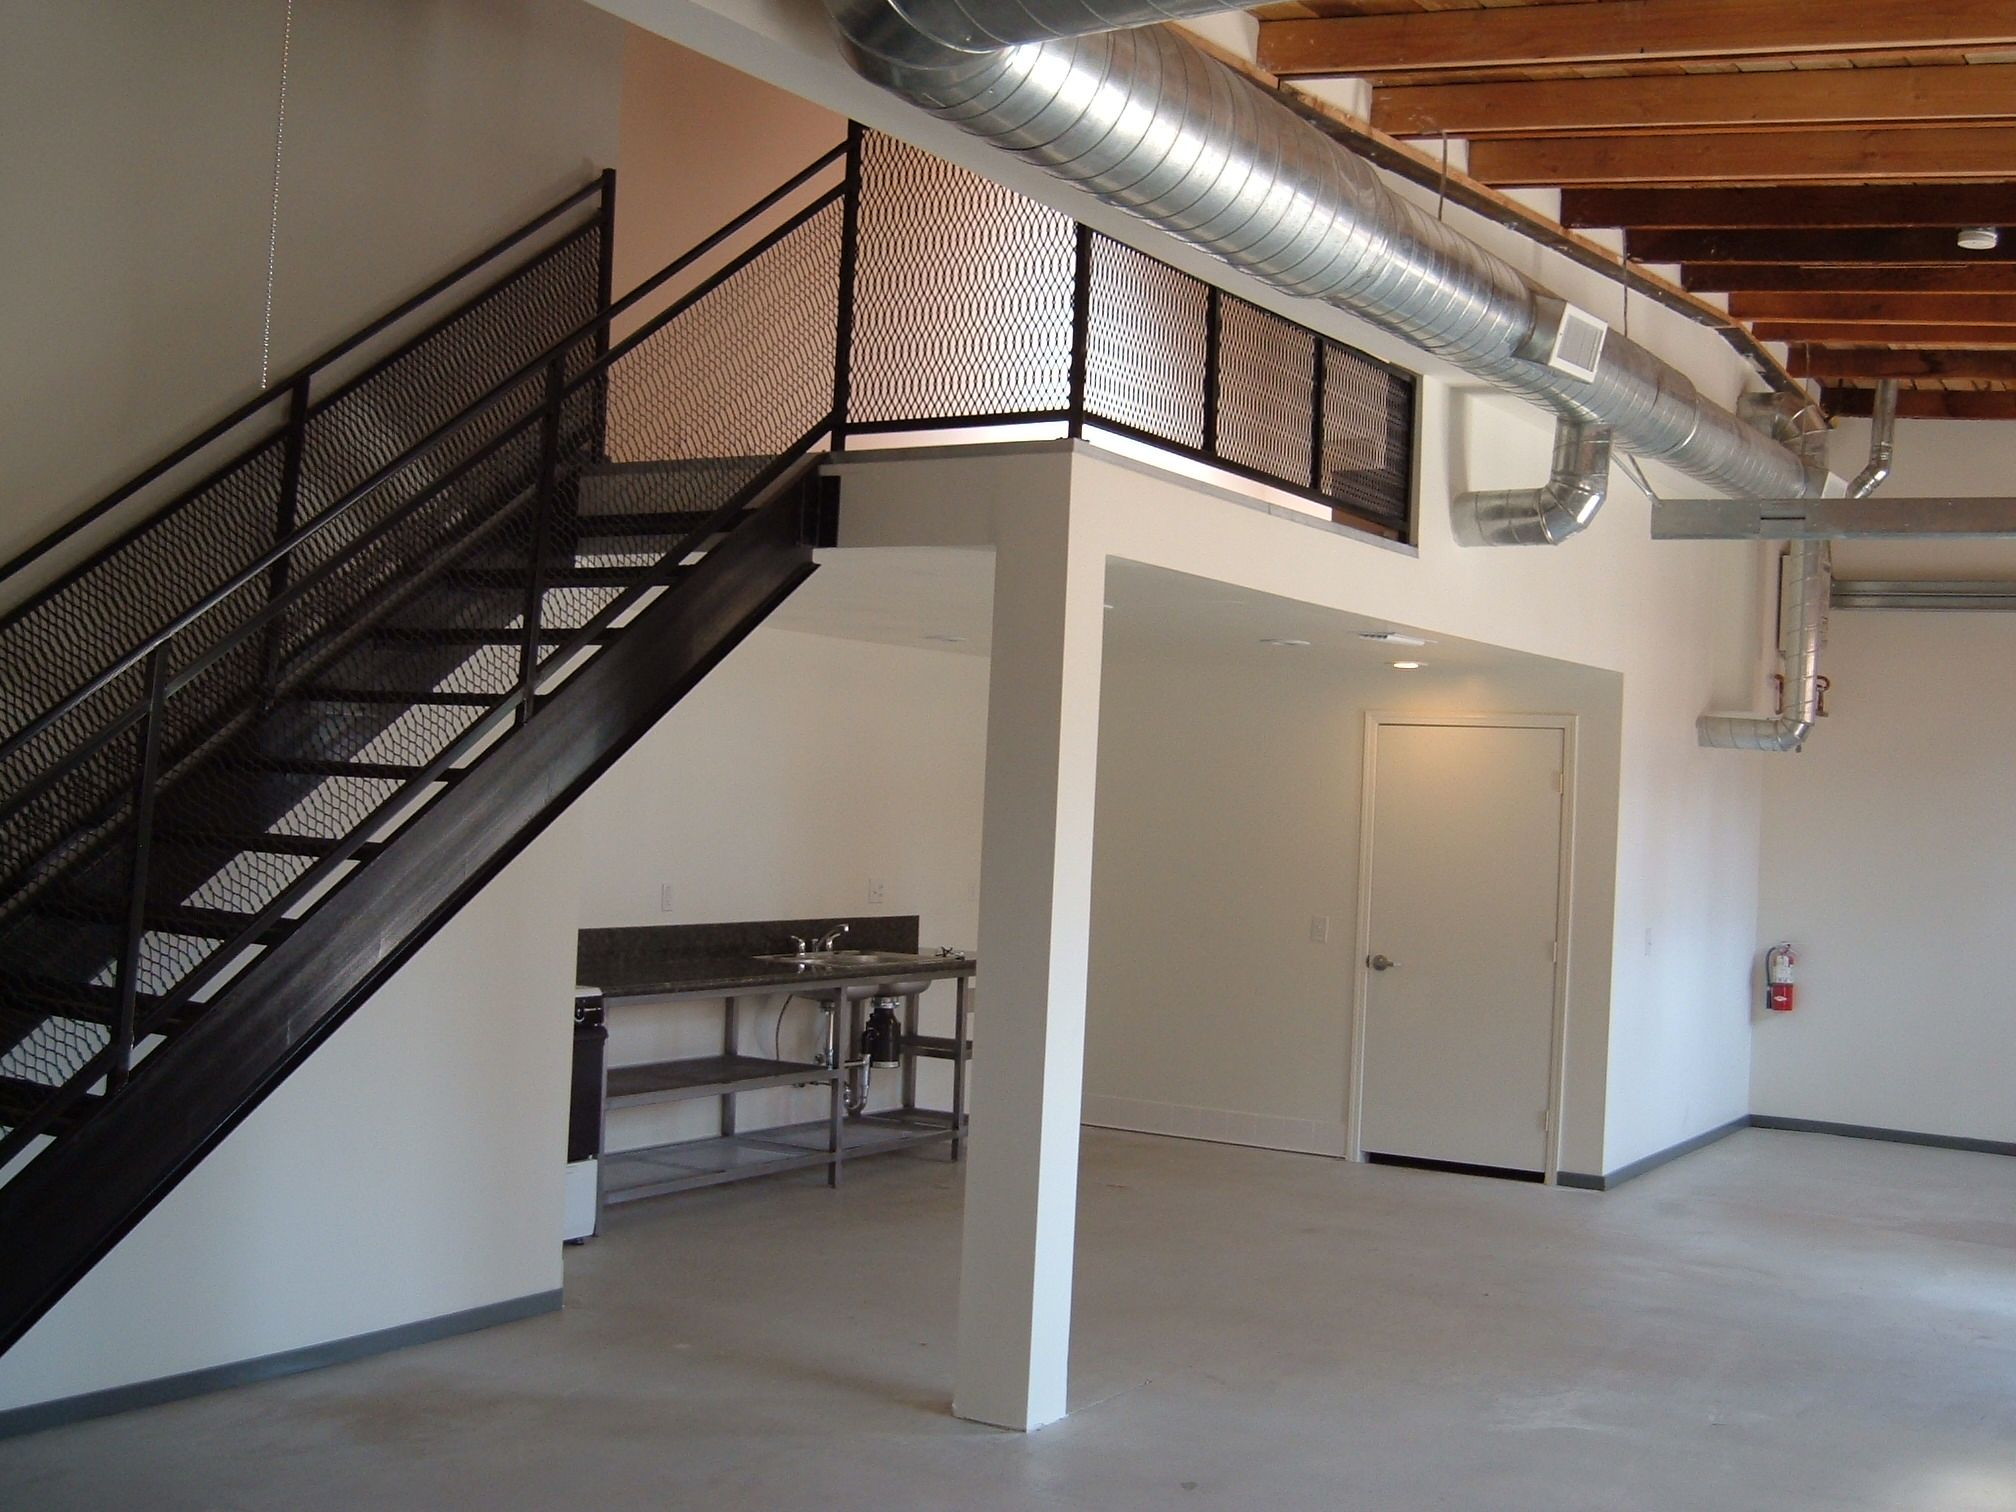 Transit Lofts Ontario Arts District Lofts In Downtown Ontario Ca Industrial Kitchen Style Loft Living Industria Lofts For Rent Live Work Lofts Loft Living